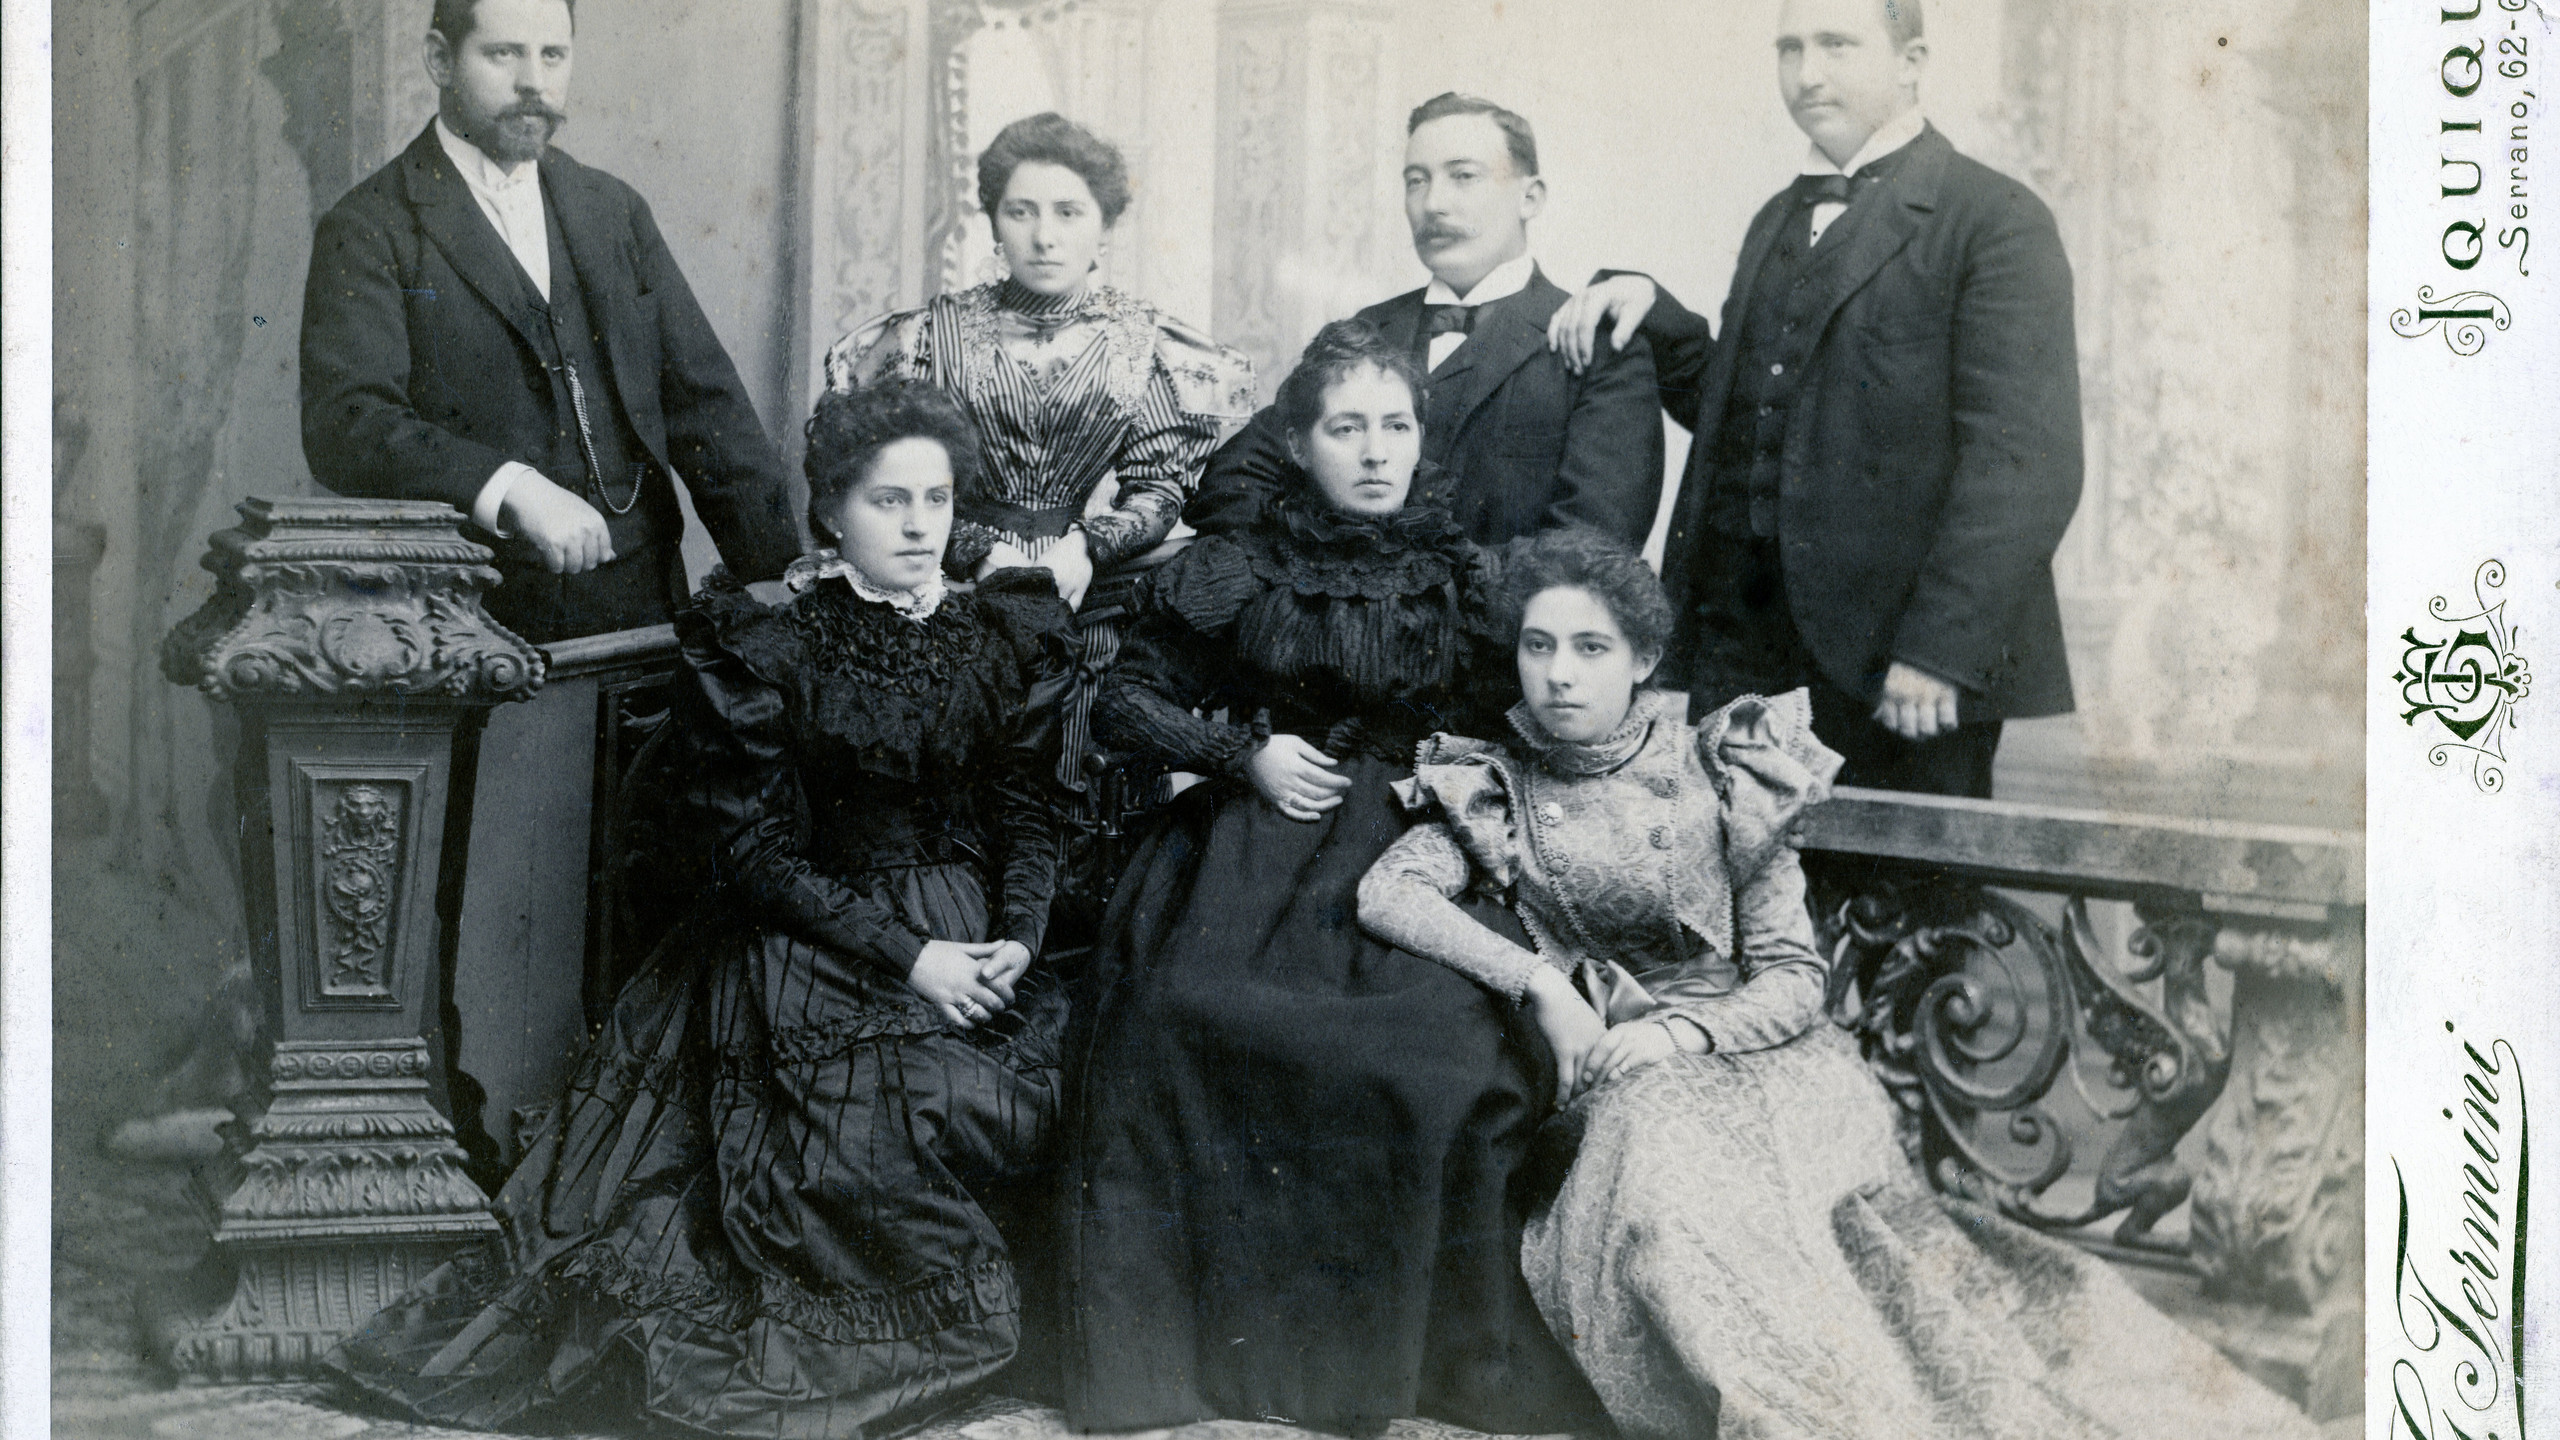 A photograph from 1897 showing the Jeffery, Sampaio and Bruna families together. Augusto Bruna was married to Rosario Sampaio, America Sampaio is next to her husband George Jeffery and next to him his brother Frank. Abuelita Rosa in the centre is Rosa Sampaio Vega widow of Governor Francisco Sampaio and another daughter Delia Sampaio. The relationship between the Bruna family and the Jeffery family goes back a very long way.